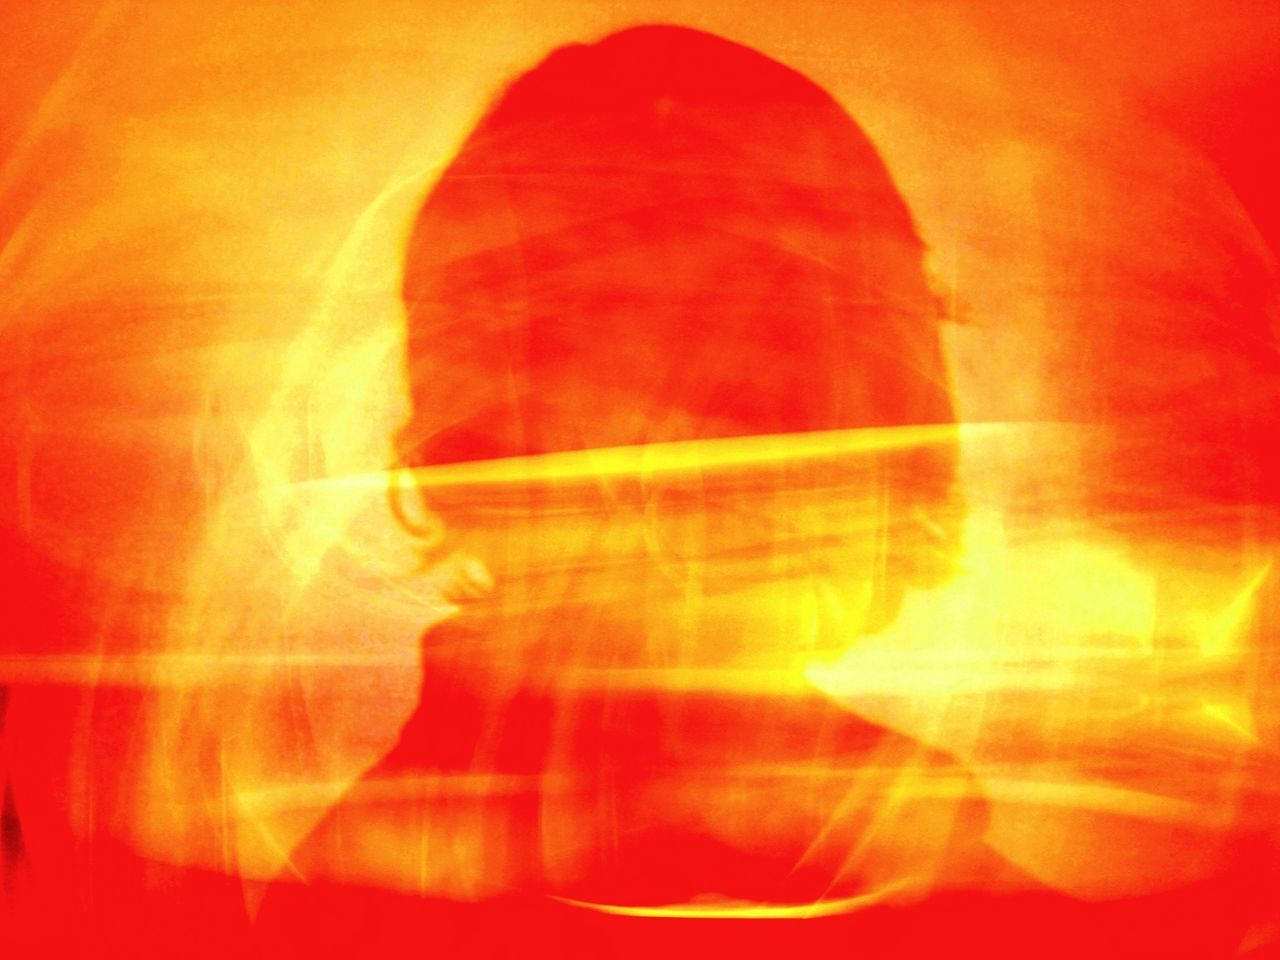 Double Exposure Image Of Person With Flames